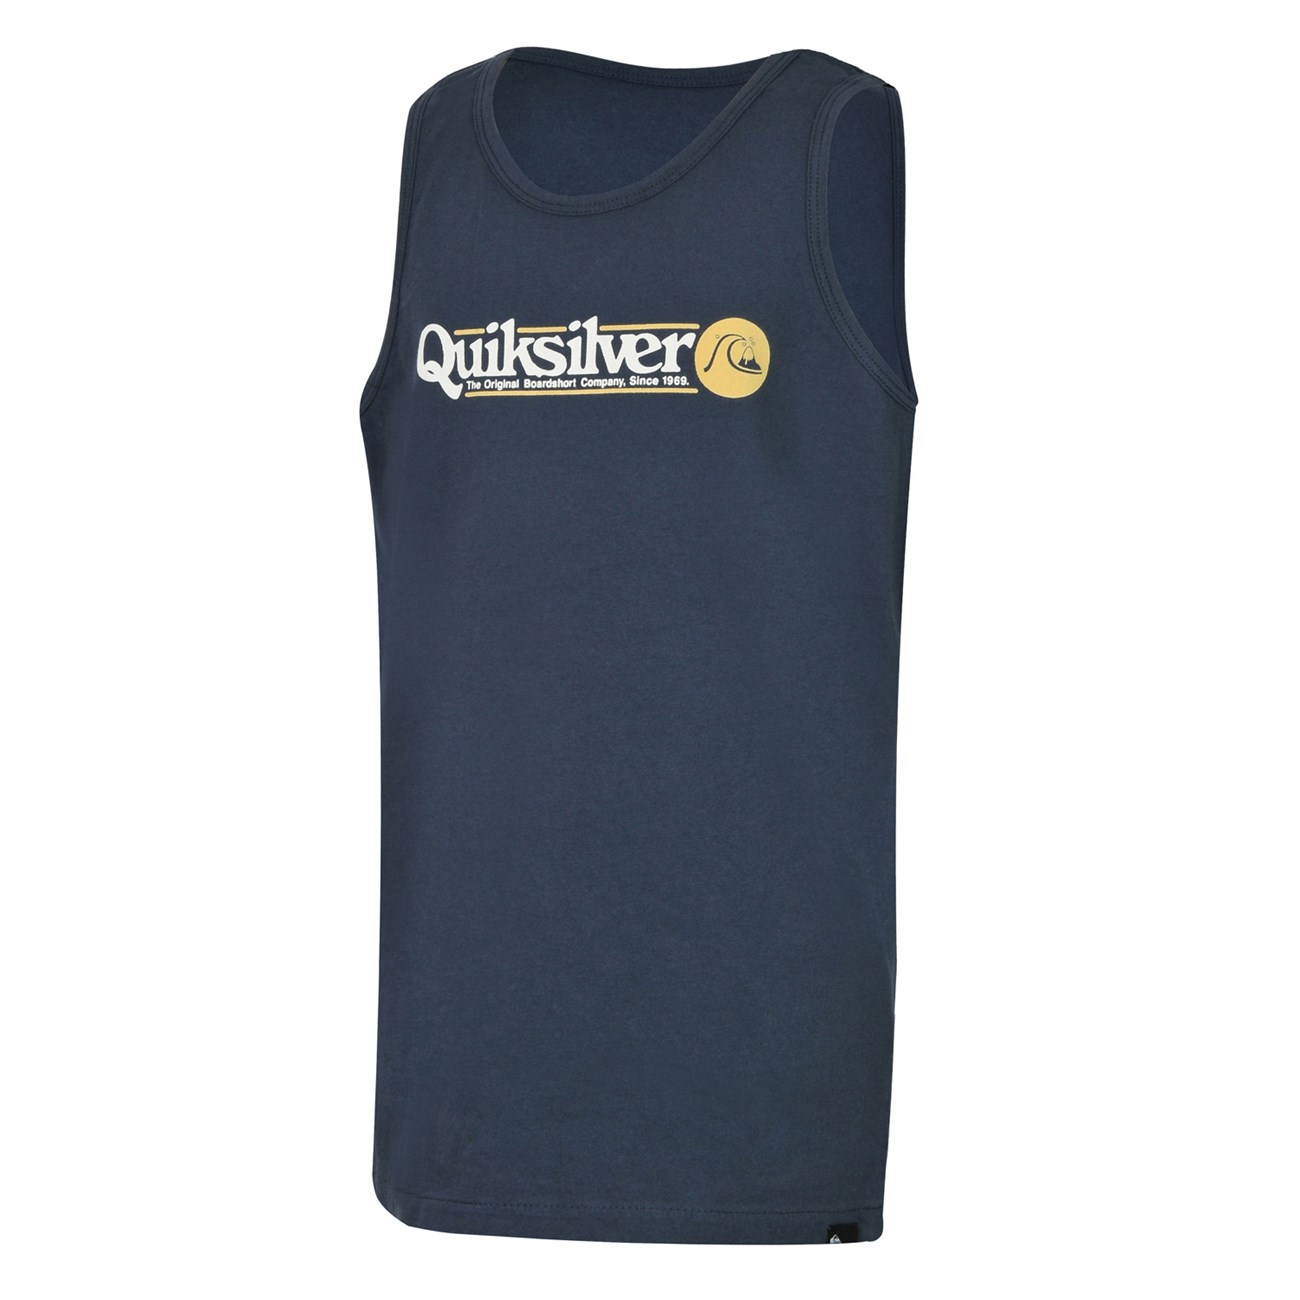 cabb2584011 QUIKSILVER ART TICKLE TANK YOUTH < Παιδικά Αμάνικα T-shirts | INTERSPORT